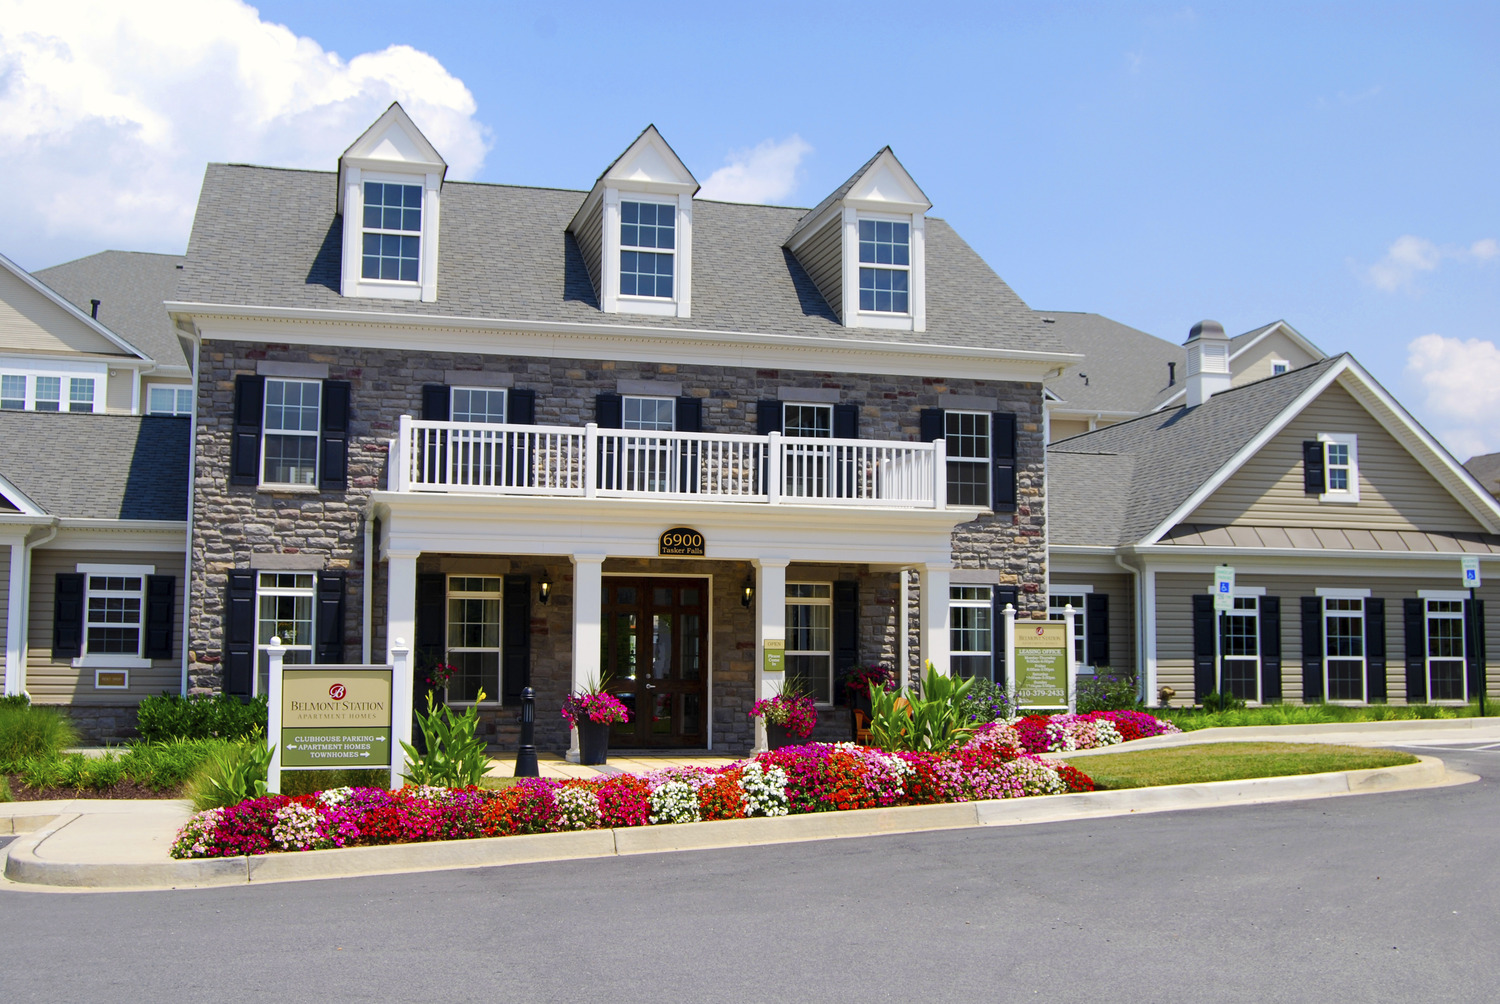 CBG builds Belmont Station Apartment Homes, a 208 Market-Rate Apartment Homes in Elkridge, MD - Image #2